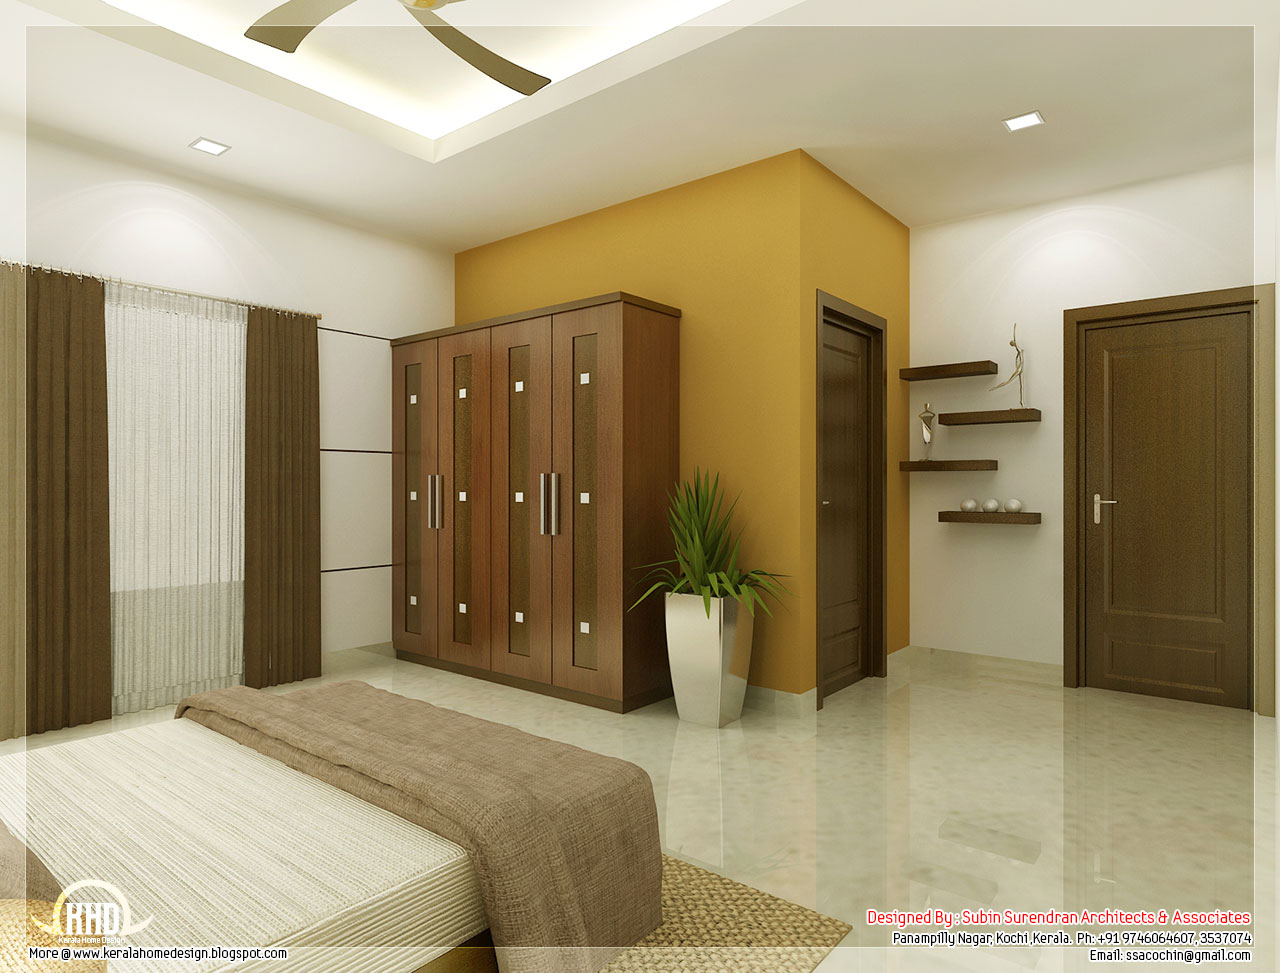 Fabulous India Interior Design Bedroom Ideas 1280 x 973 · 197 kB · jpeg